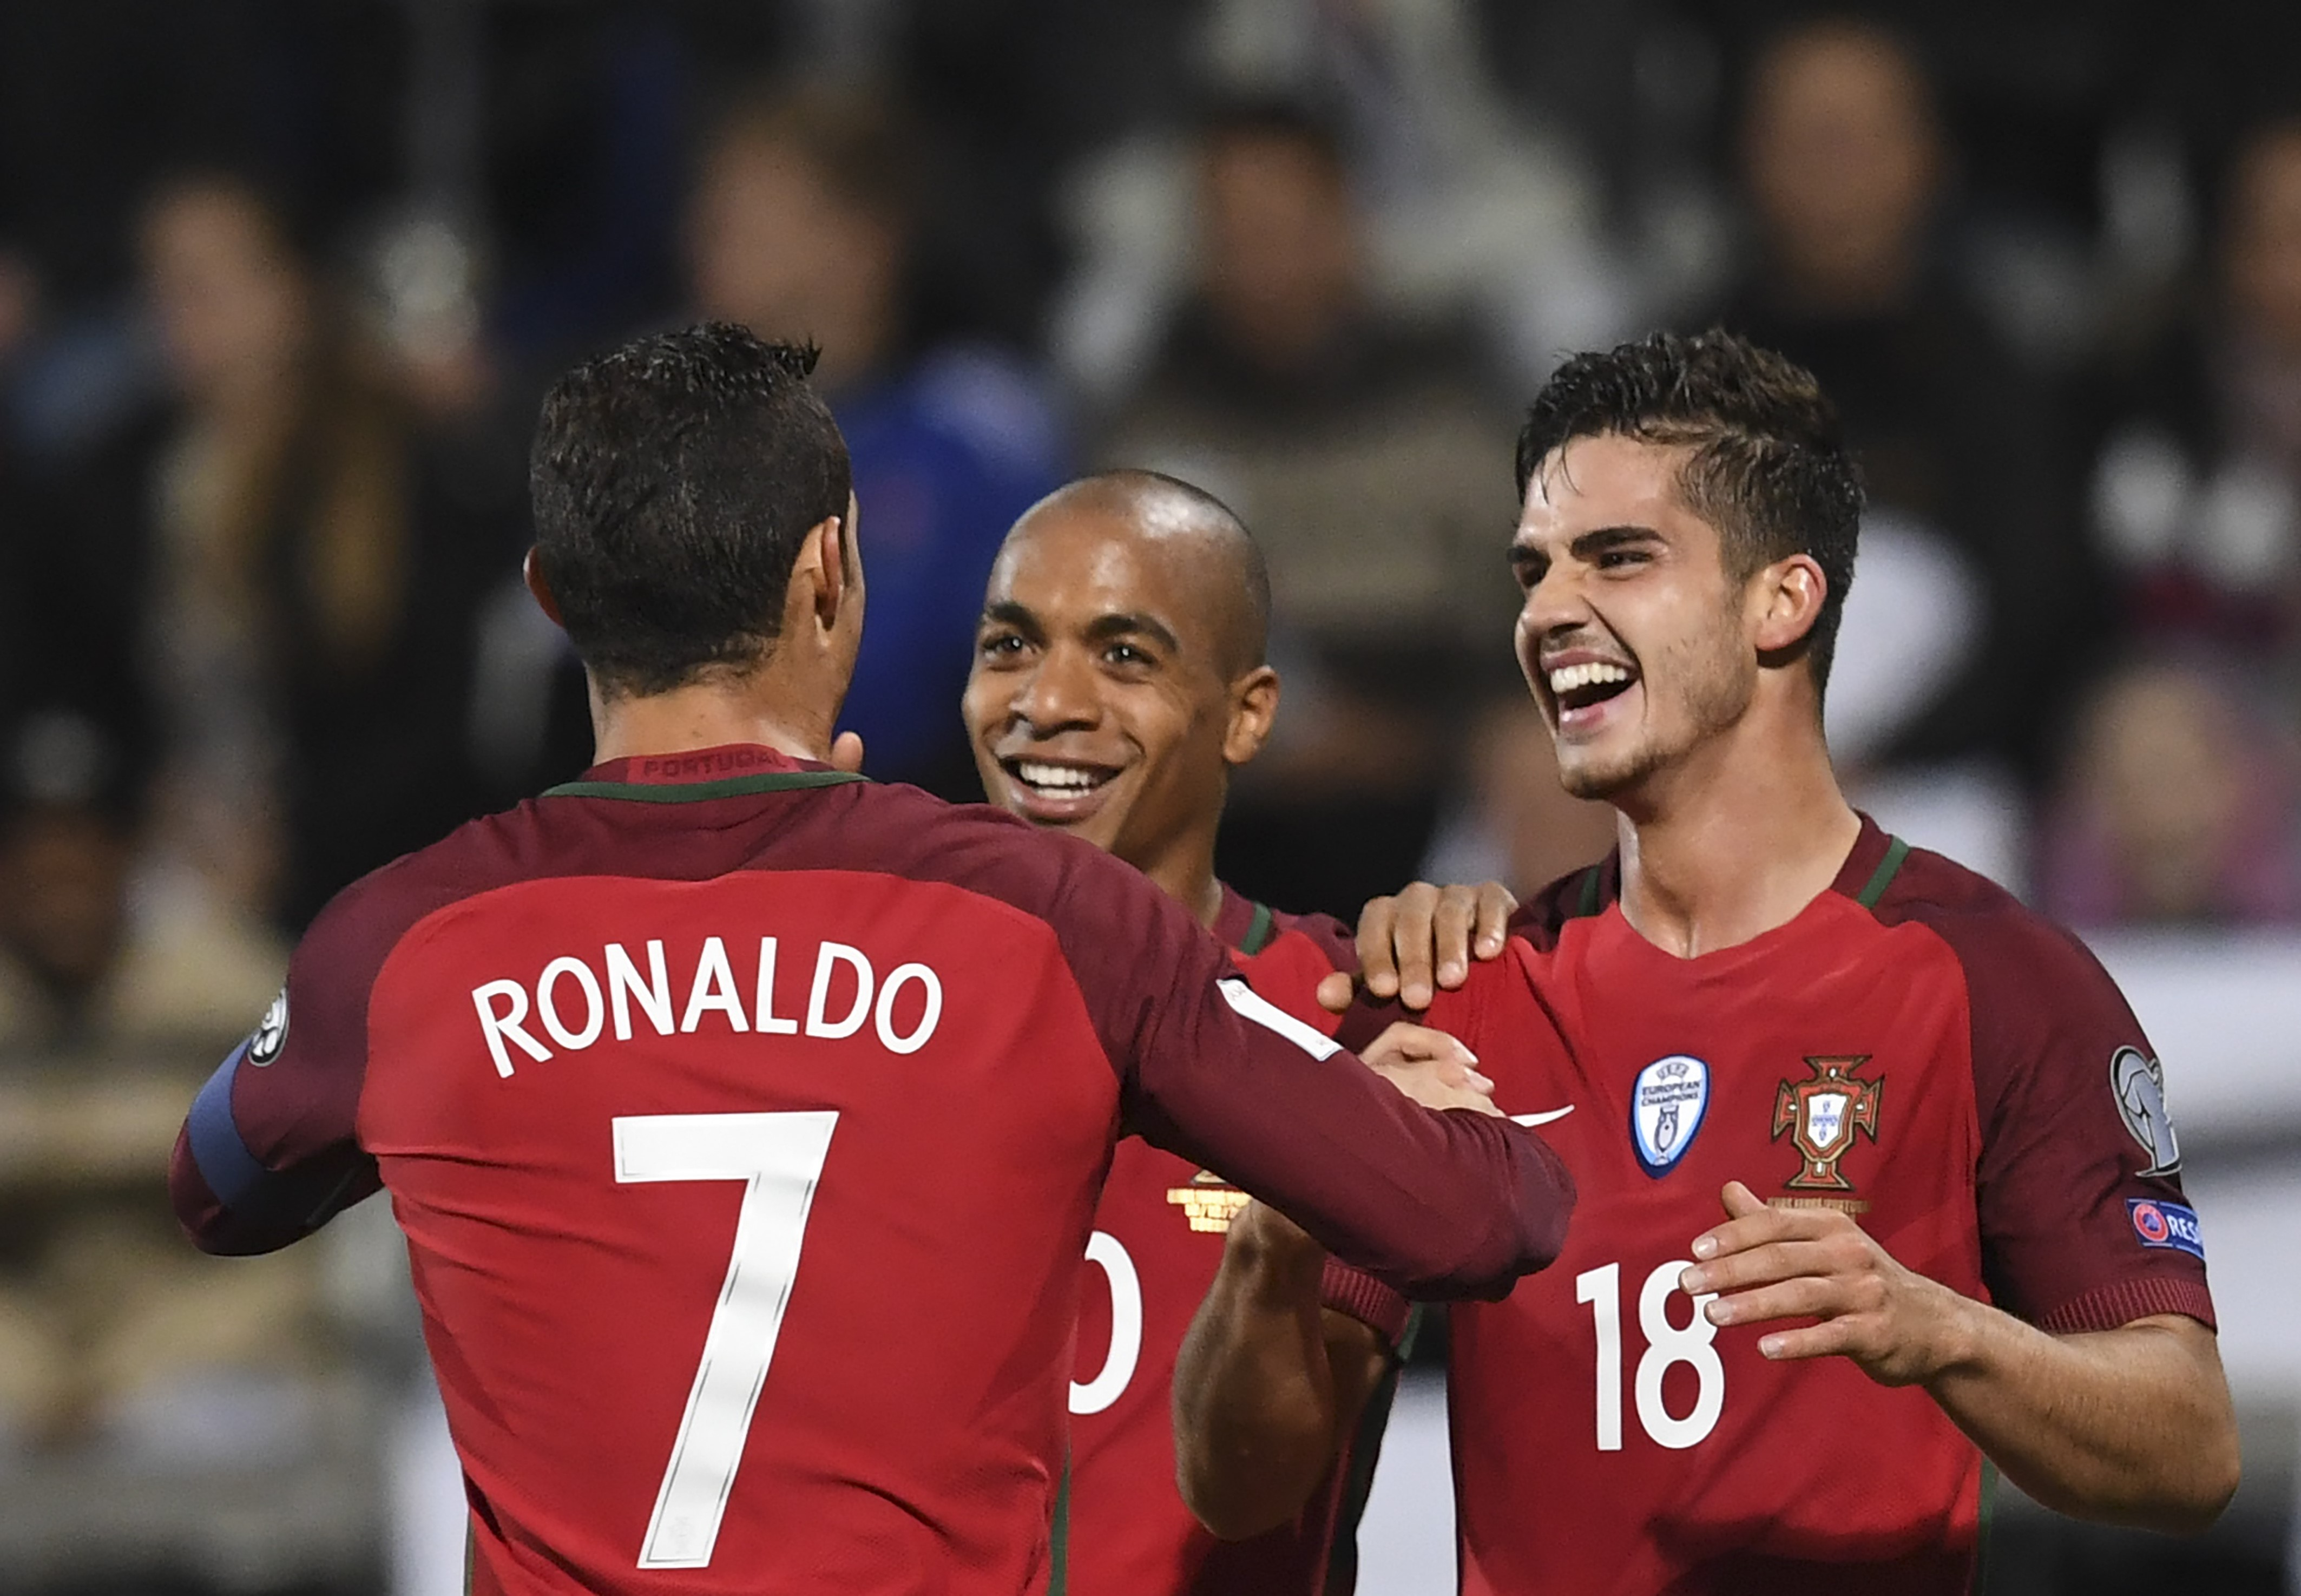 Portugal's forward Andre Silva (R) is cogratulated by teammates midfielder Joao Mario (C) and forward Cristiano Ronaldo after scoring a goal during the WC 2018 football qualification match between Faroe Islands and Portugal in Torshavn on October 10, 2016